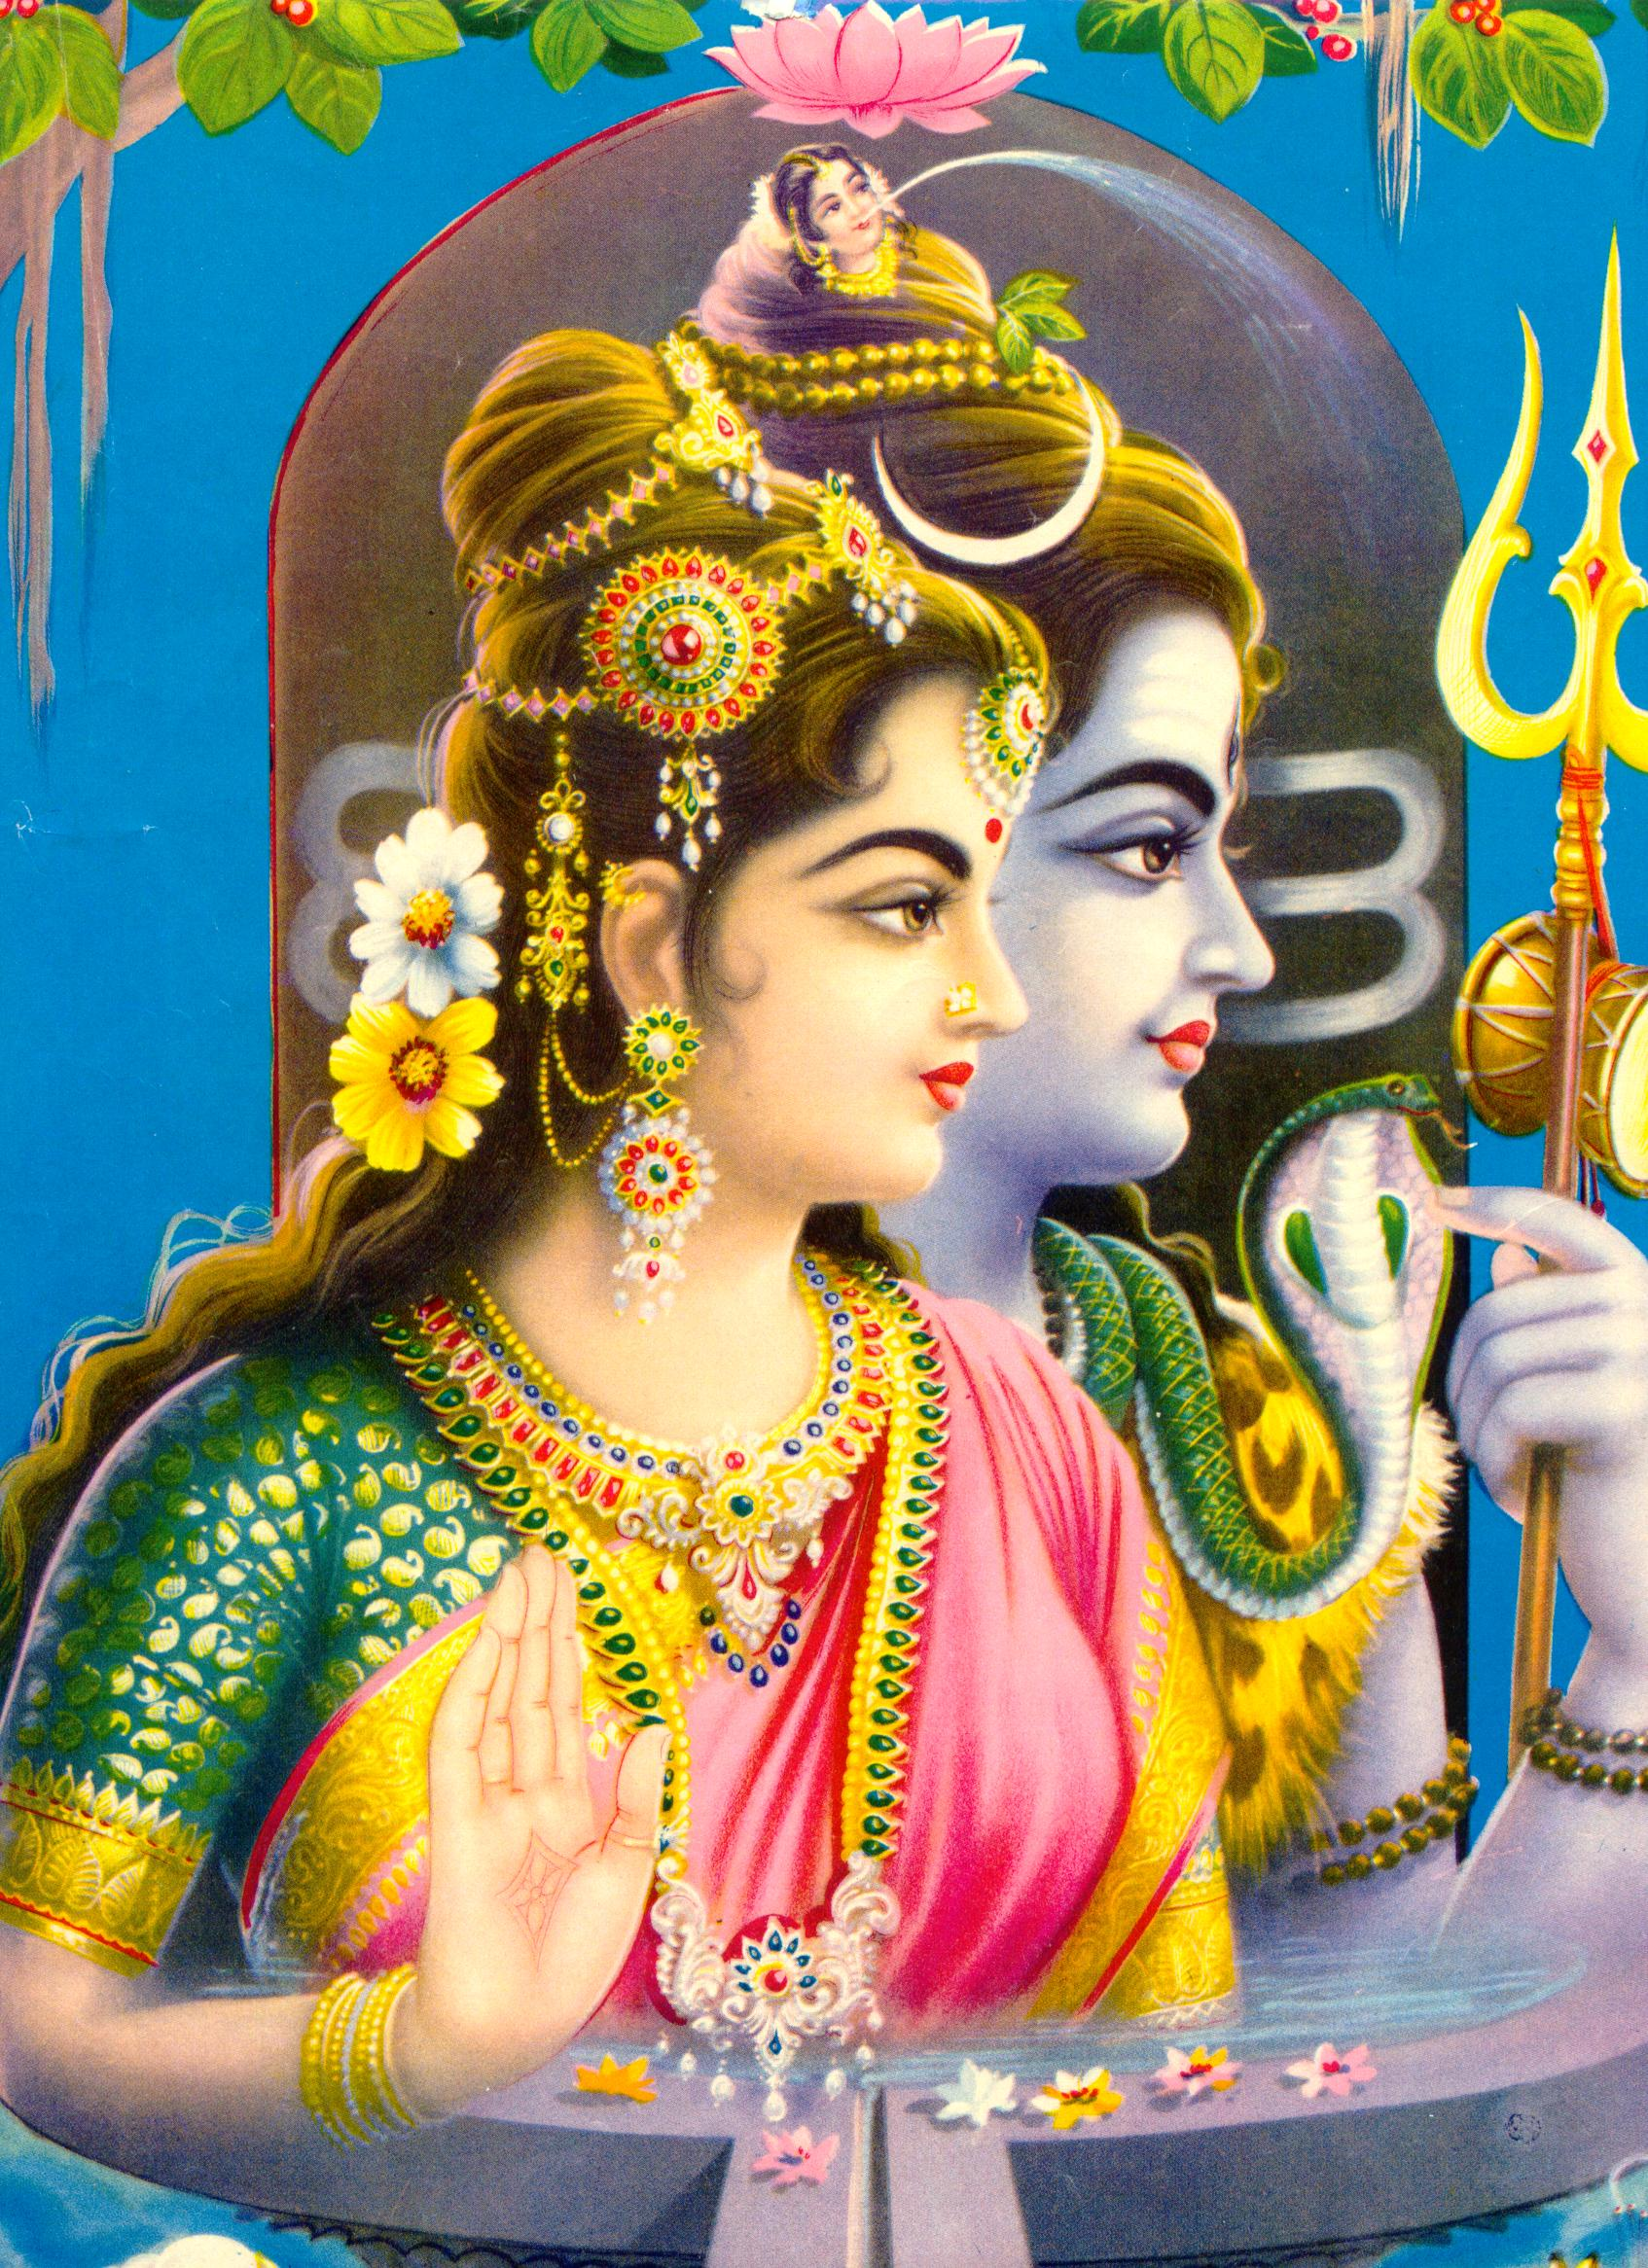 Once I heard a charming story about Shiva and Parvati PlusPng.com  - God Siva Parvathi PNG